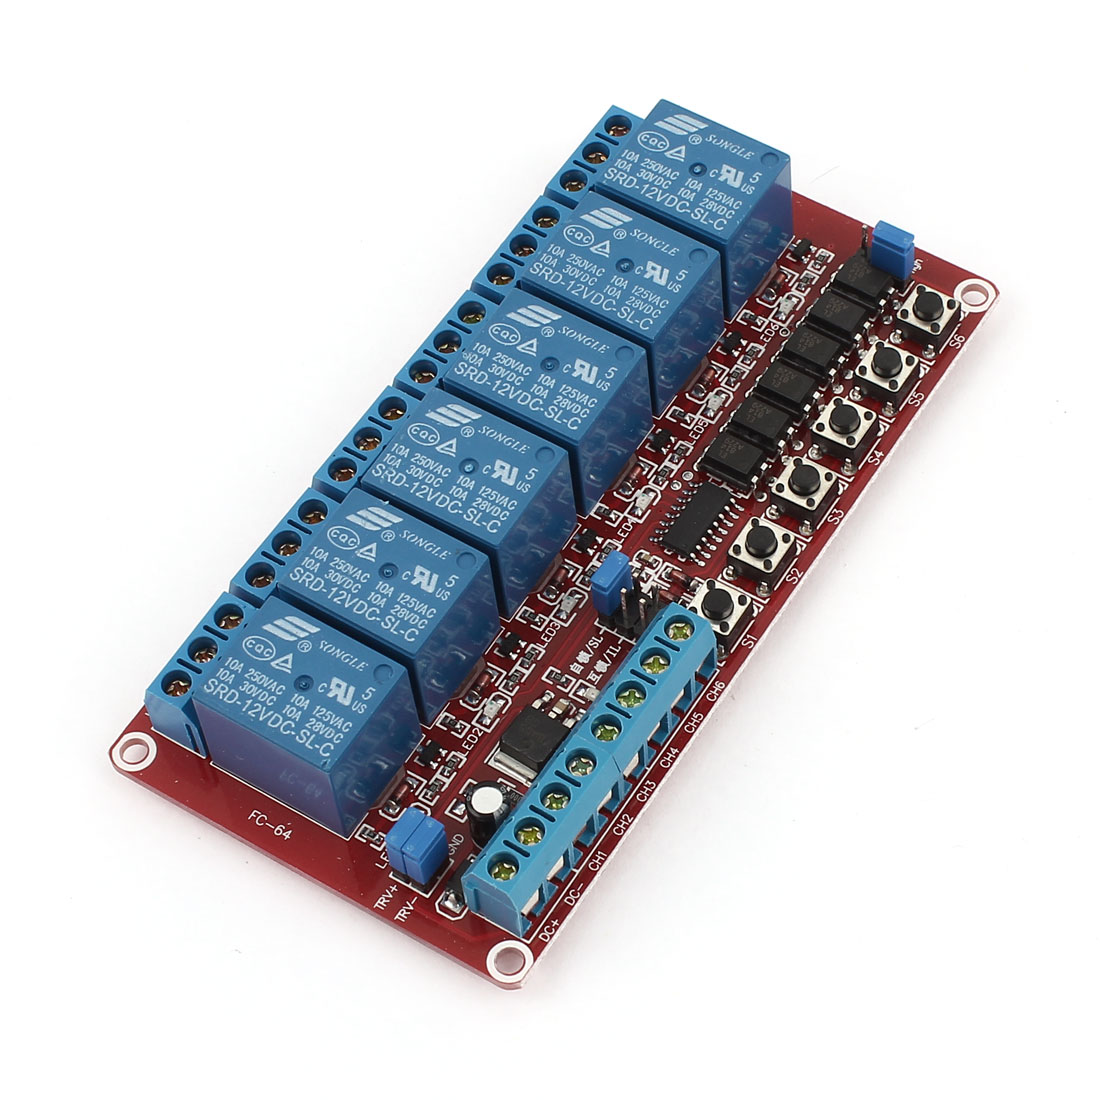 DC 12V 6 Channel Self-lock Interlock Triggered Relay Module for PIC